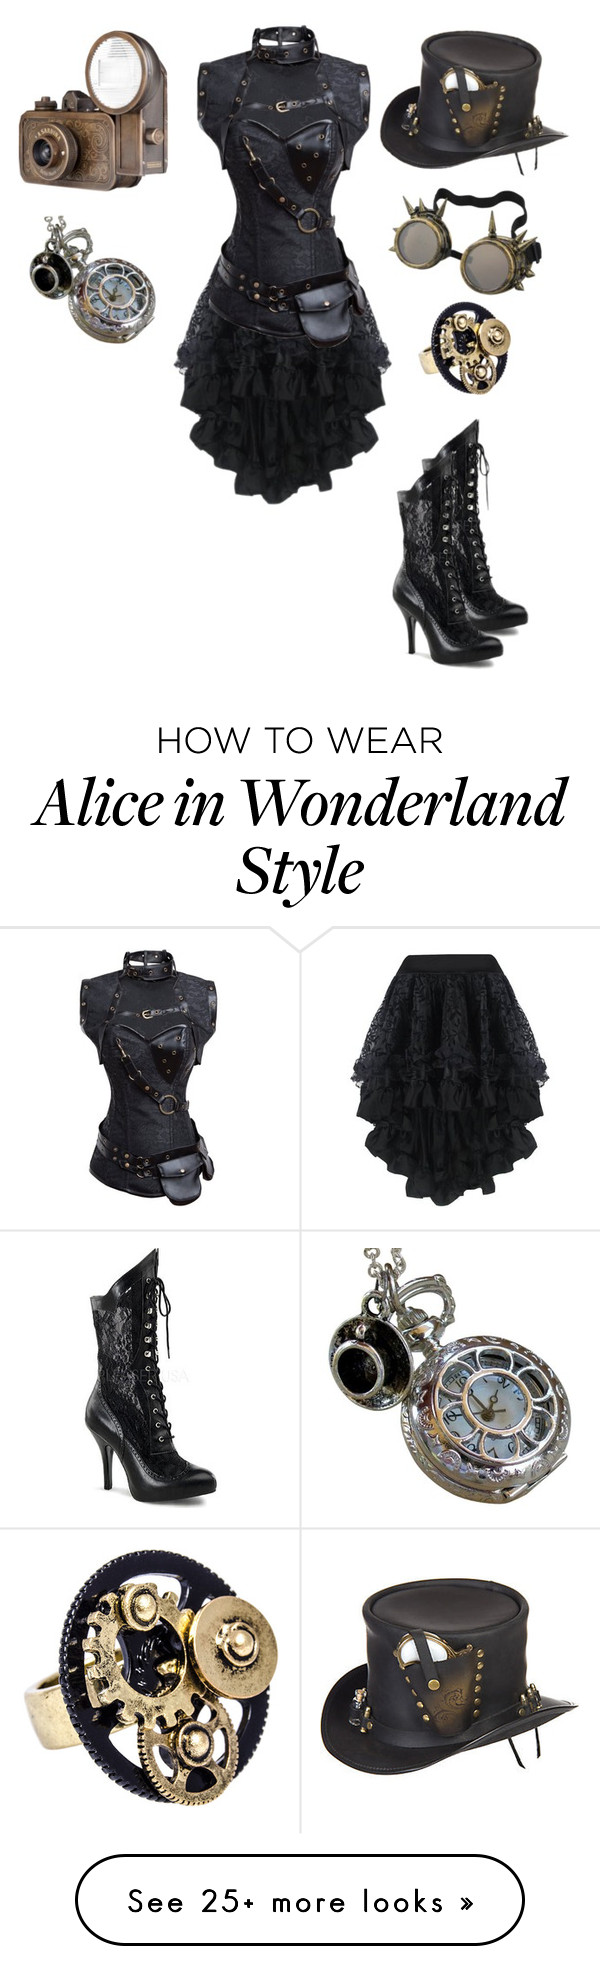 """Steampunk"" by alexdamarkiplite on Polyvore featuring Retrò, Overland Sheepskin Co., Funtasma and steampunk"